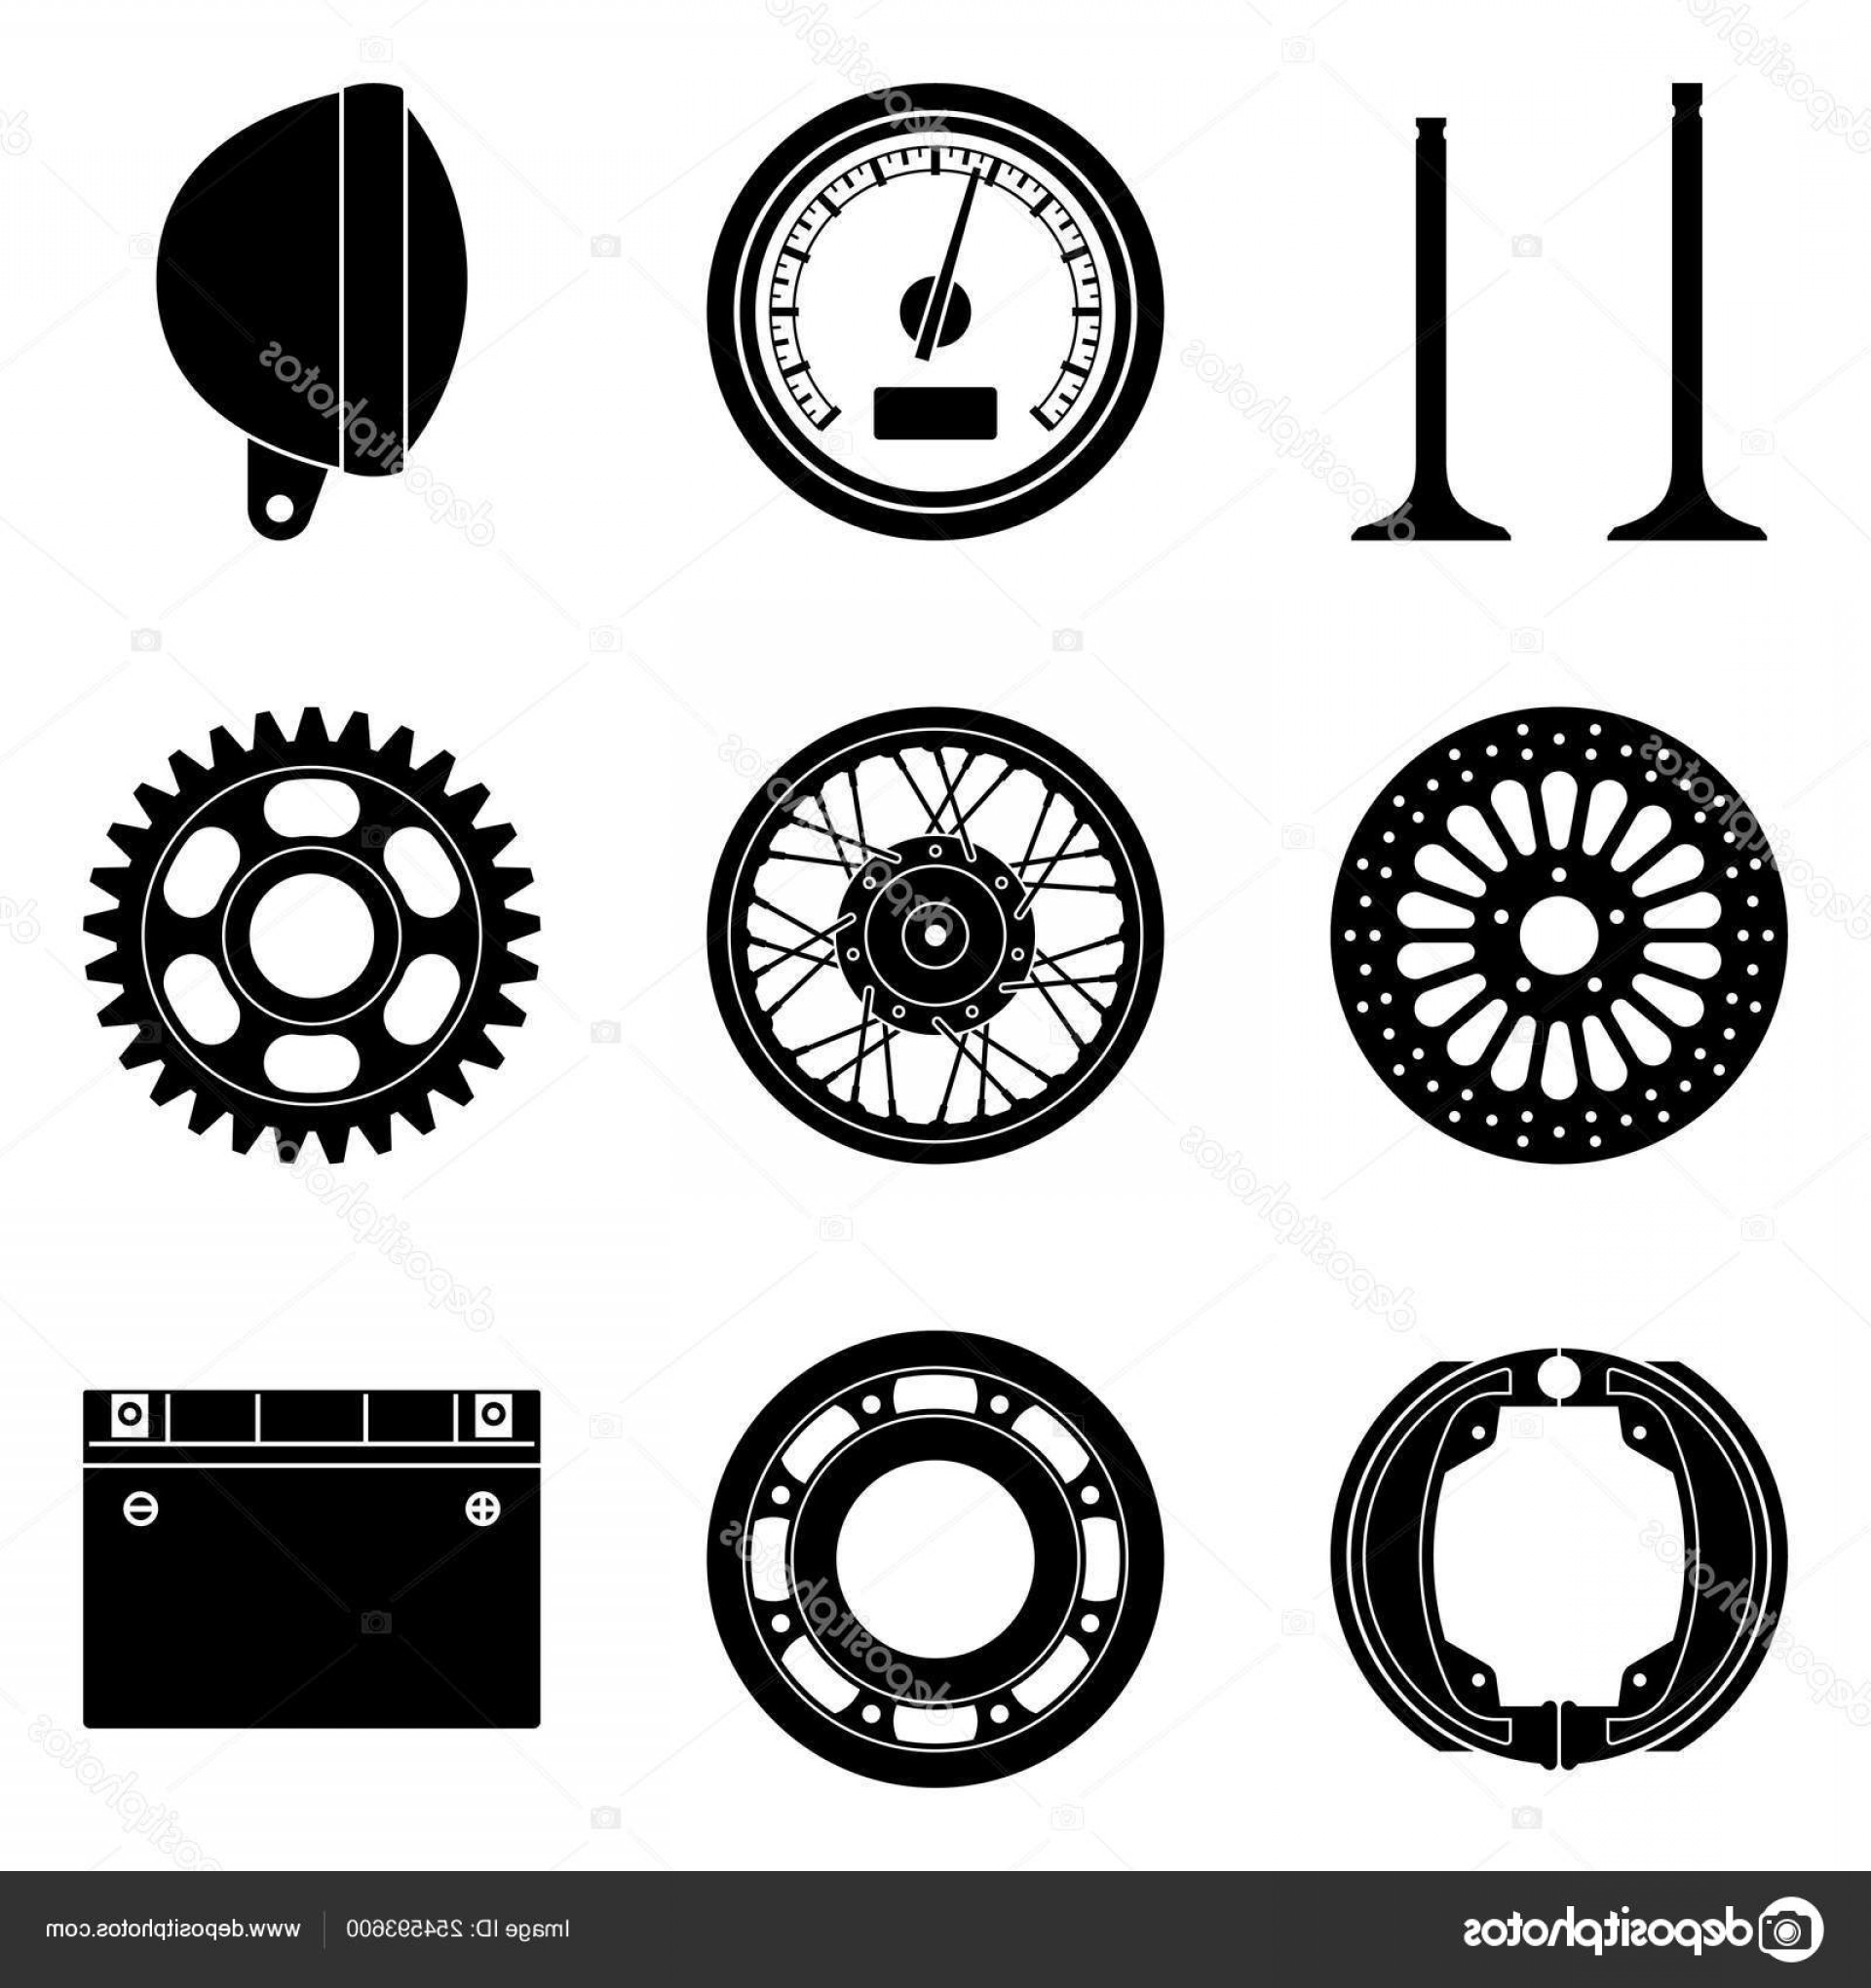 Vector Motorcycle Parts: Stock Illustration Set Of Motorcycle Parts Icons